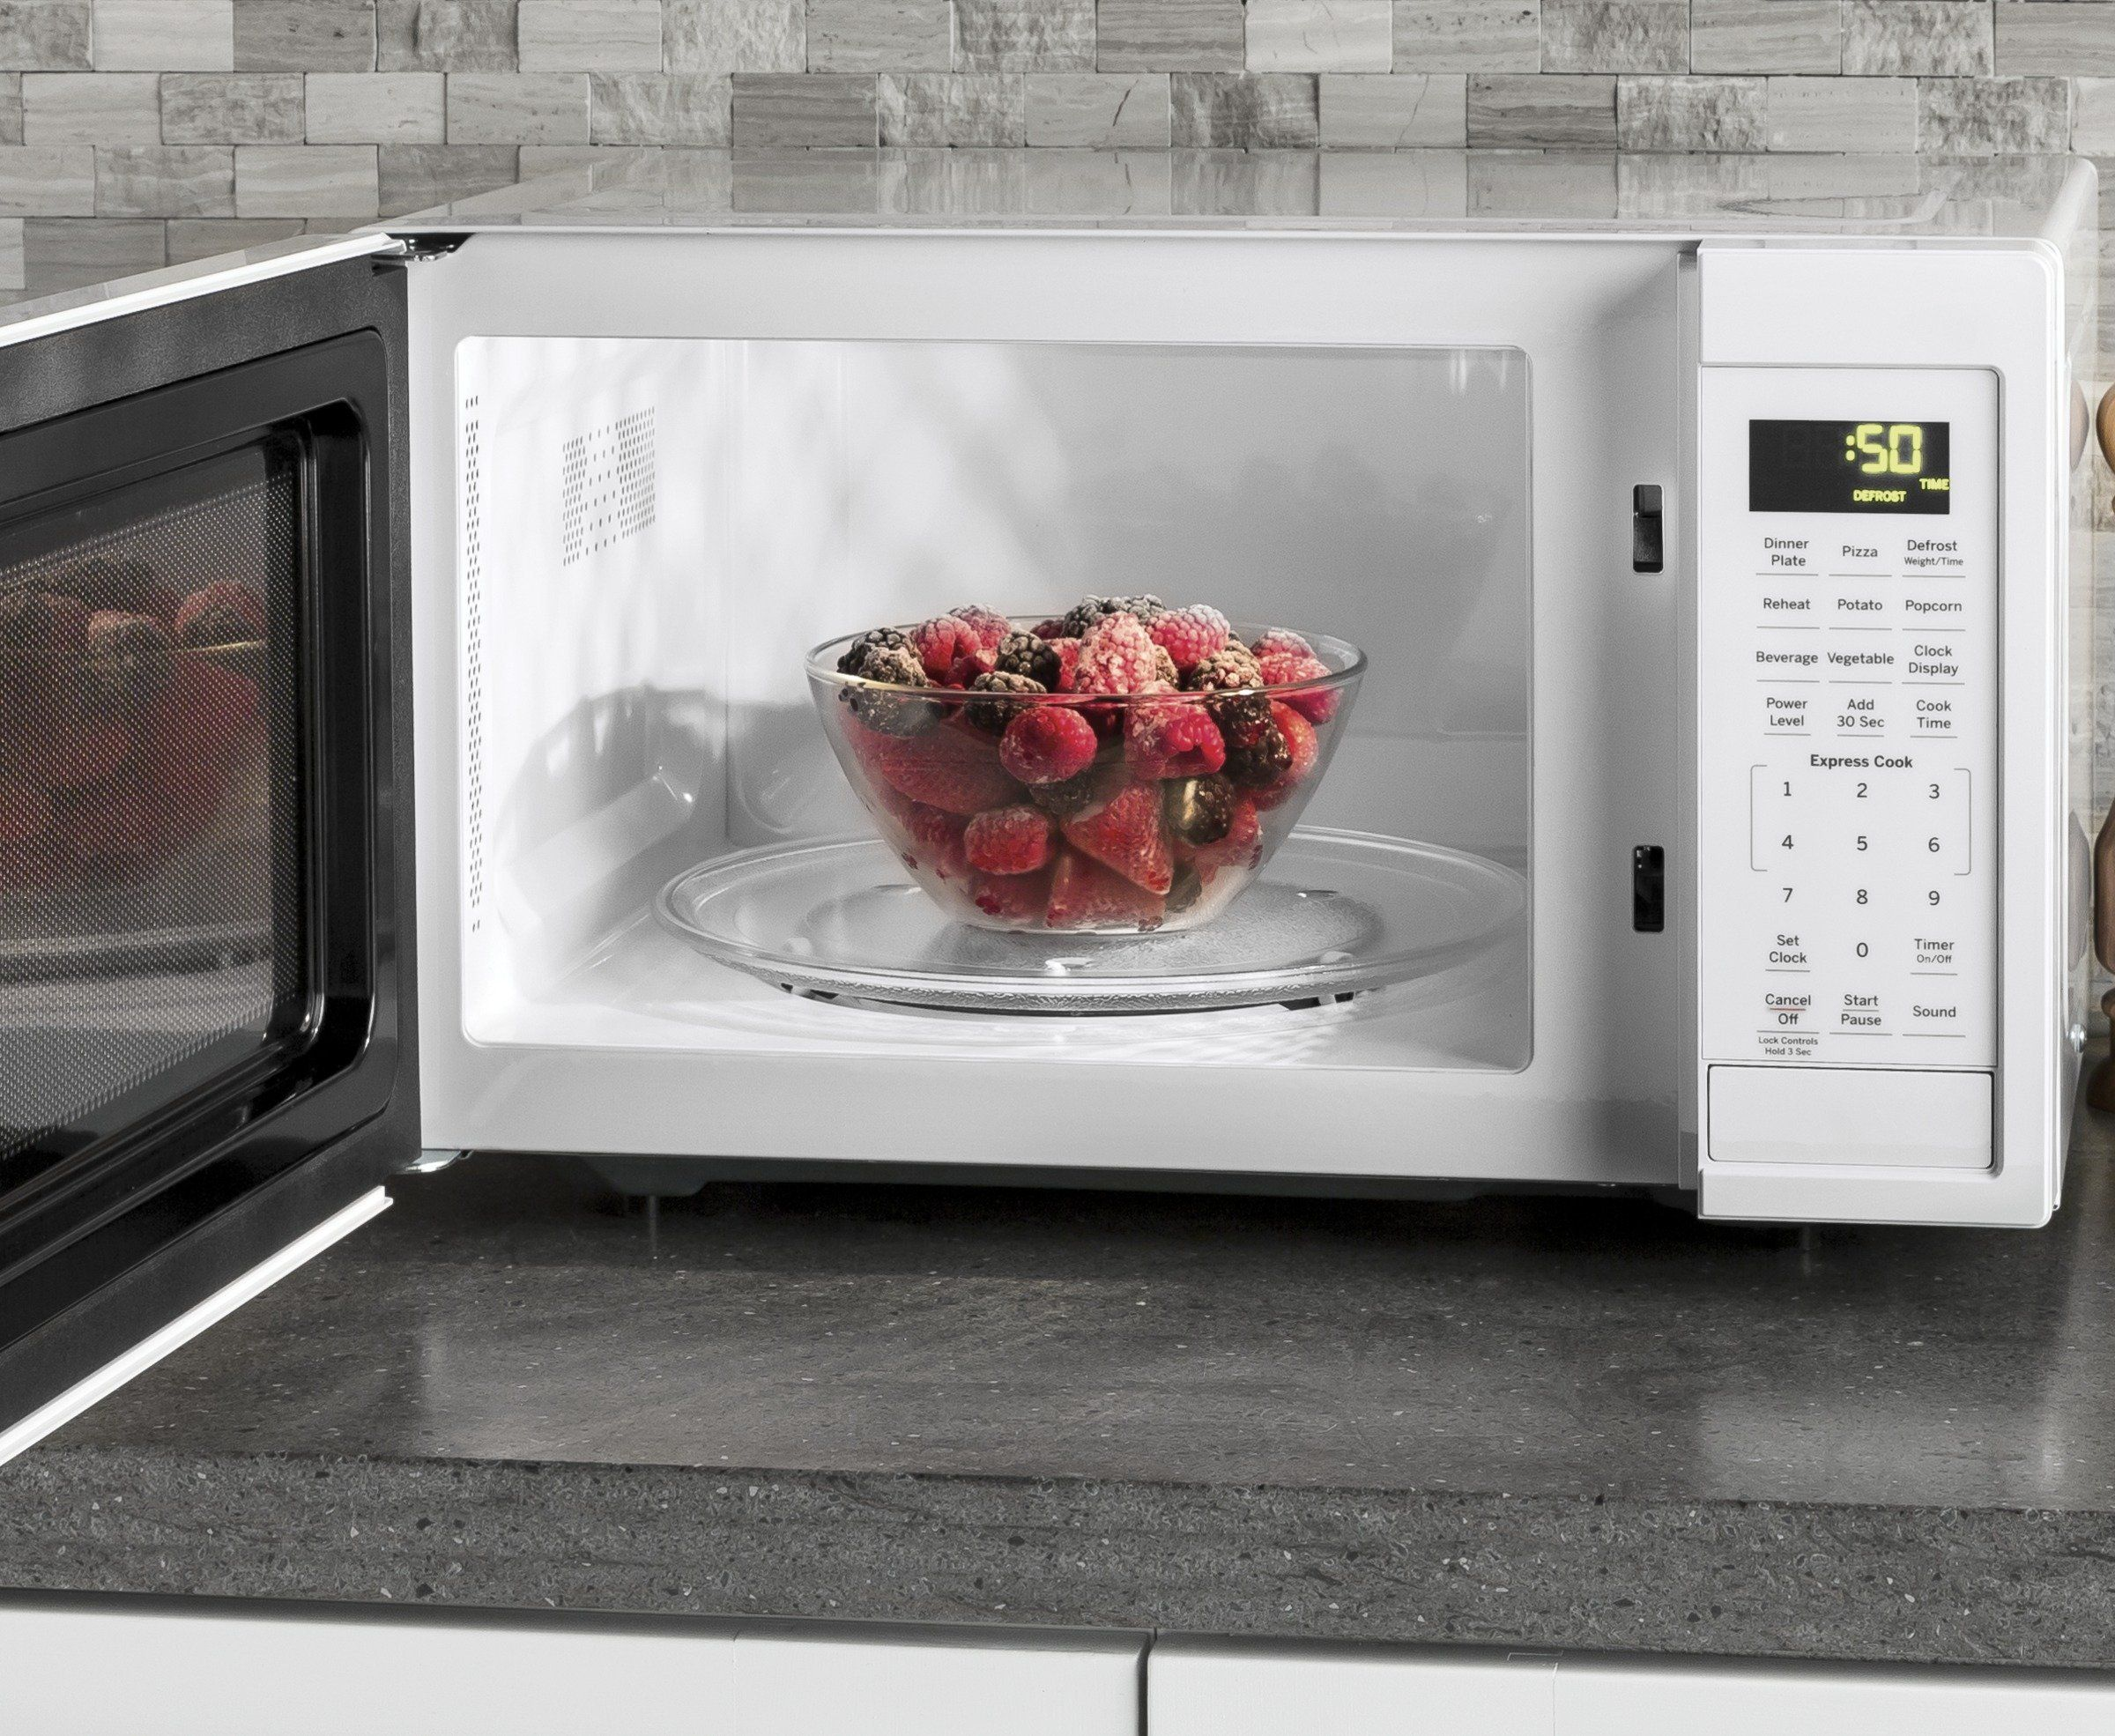 Ge 0 9 Cu Ft Capacity Countertop Microwave Oven White Continue